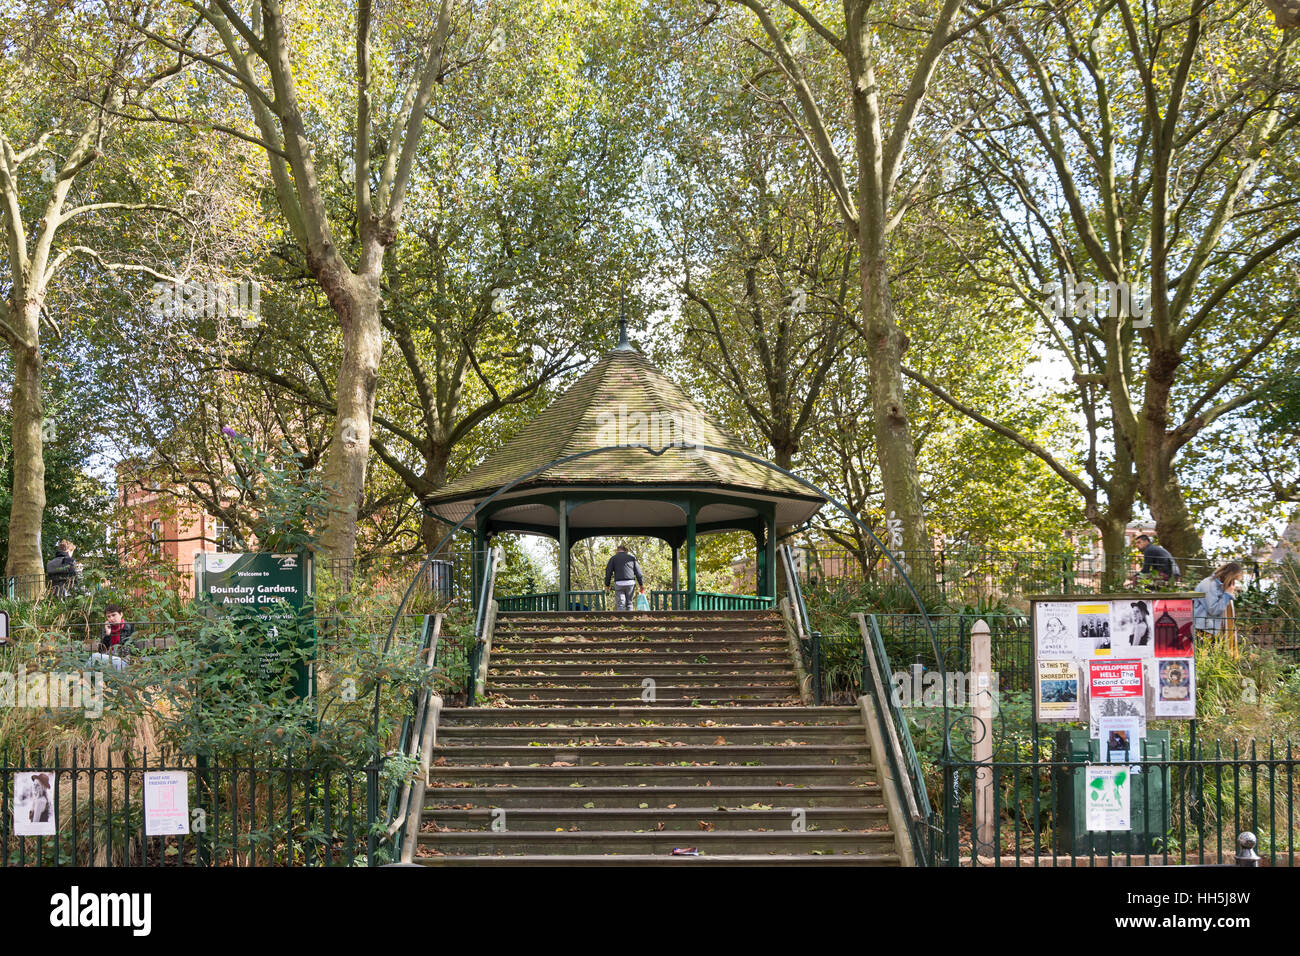 Boundary Gardens, Arnold Circus, Shoreditch, London Borough of Hackney, Greater London, England, United Kingdom - Stock Image